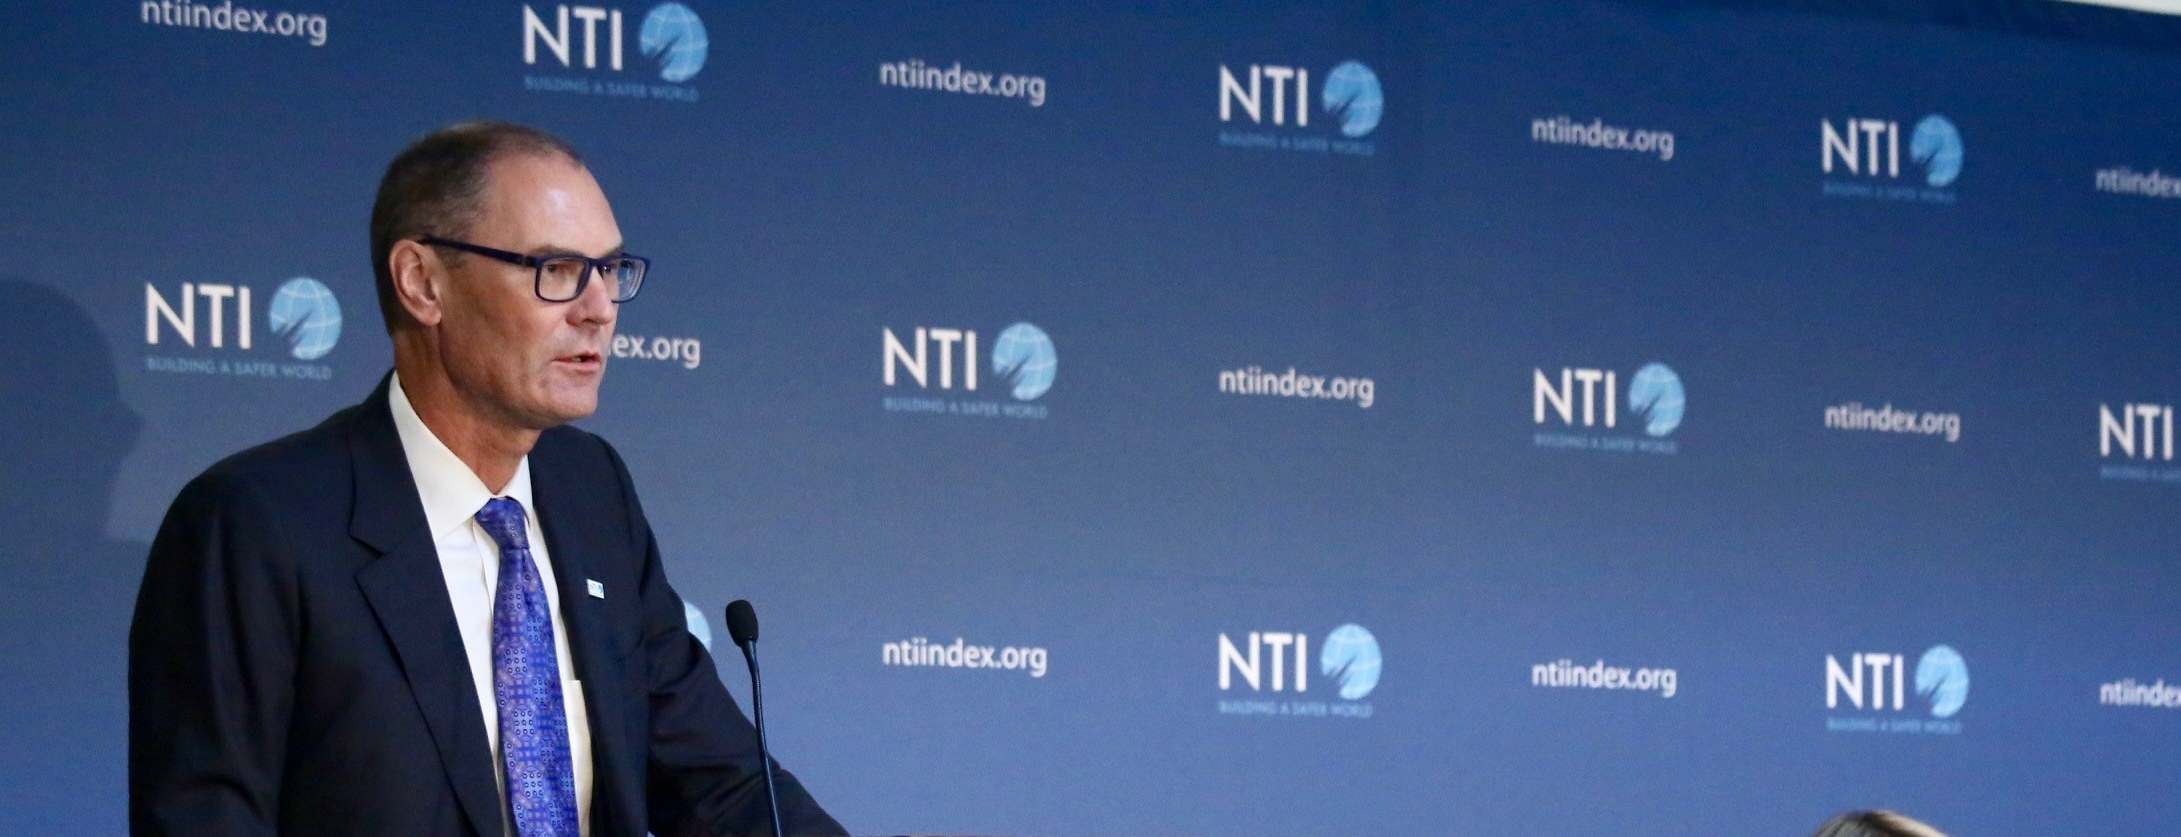 Important Nuclear Security Progress Now in Jeopardy, According to